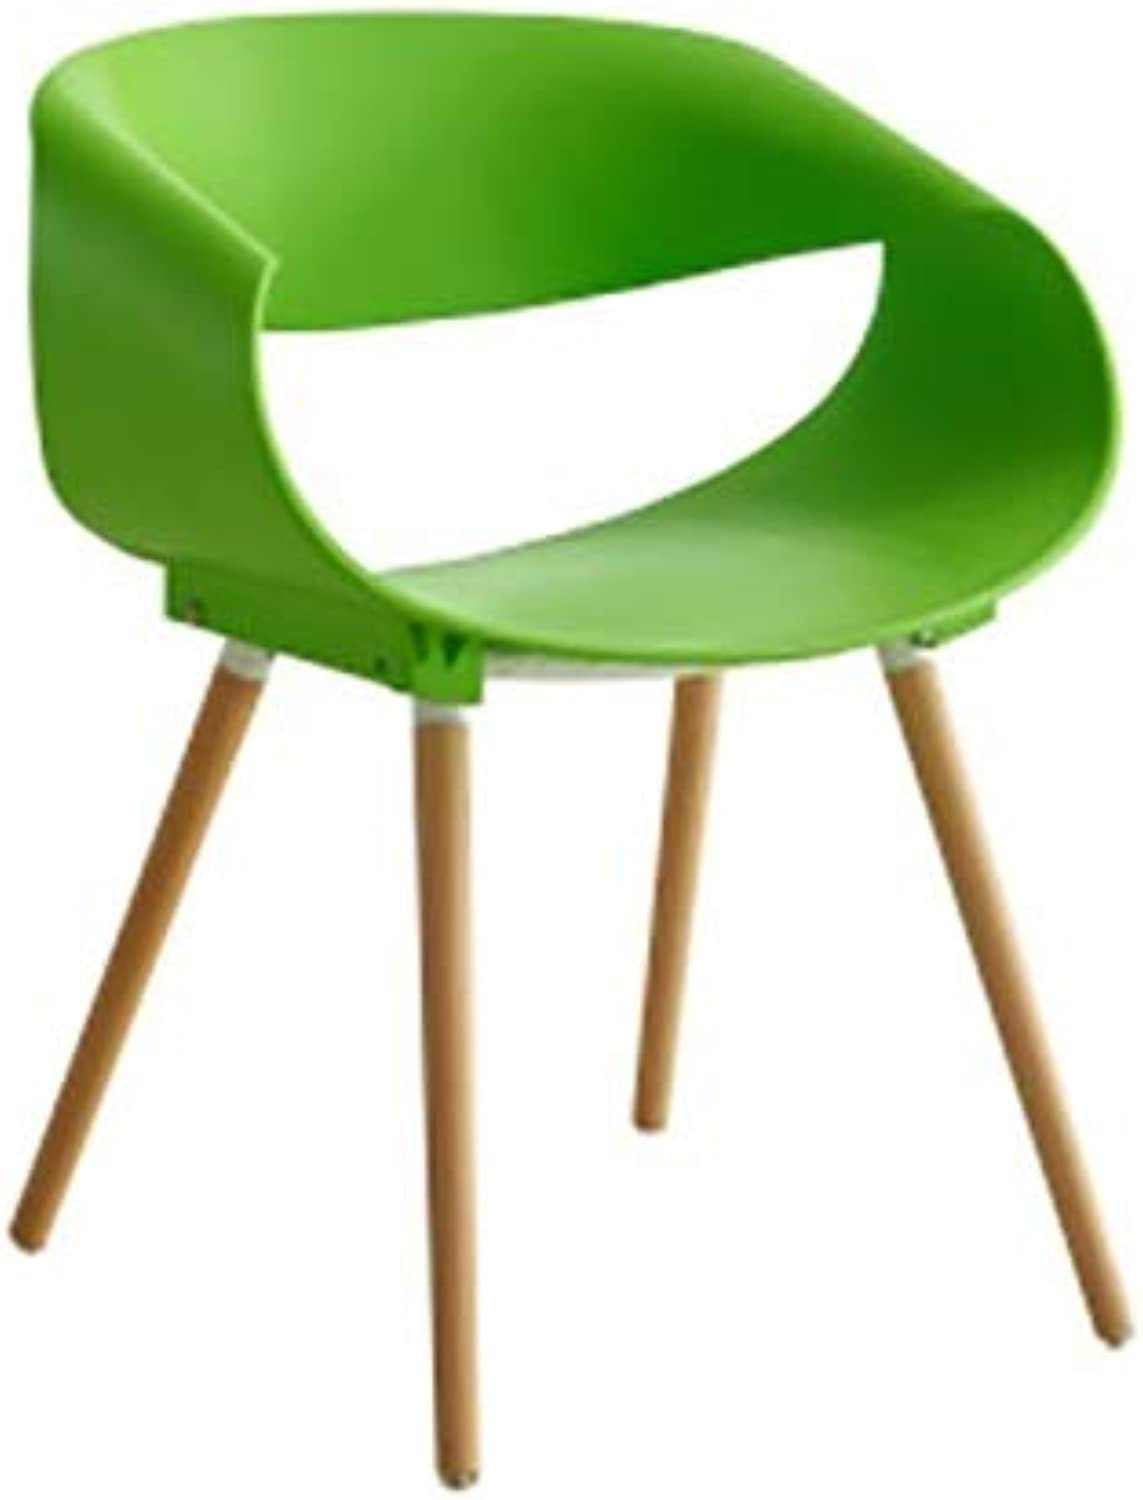 TXXM Barstools Plastic Chair Personality Creative Office to Discuss Reception Chair White Plastic Coffee Shop seat (color   Green)